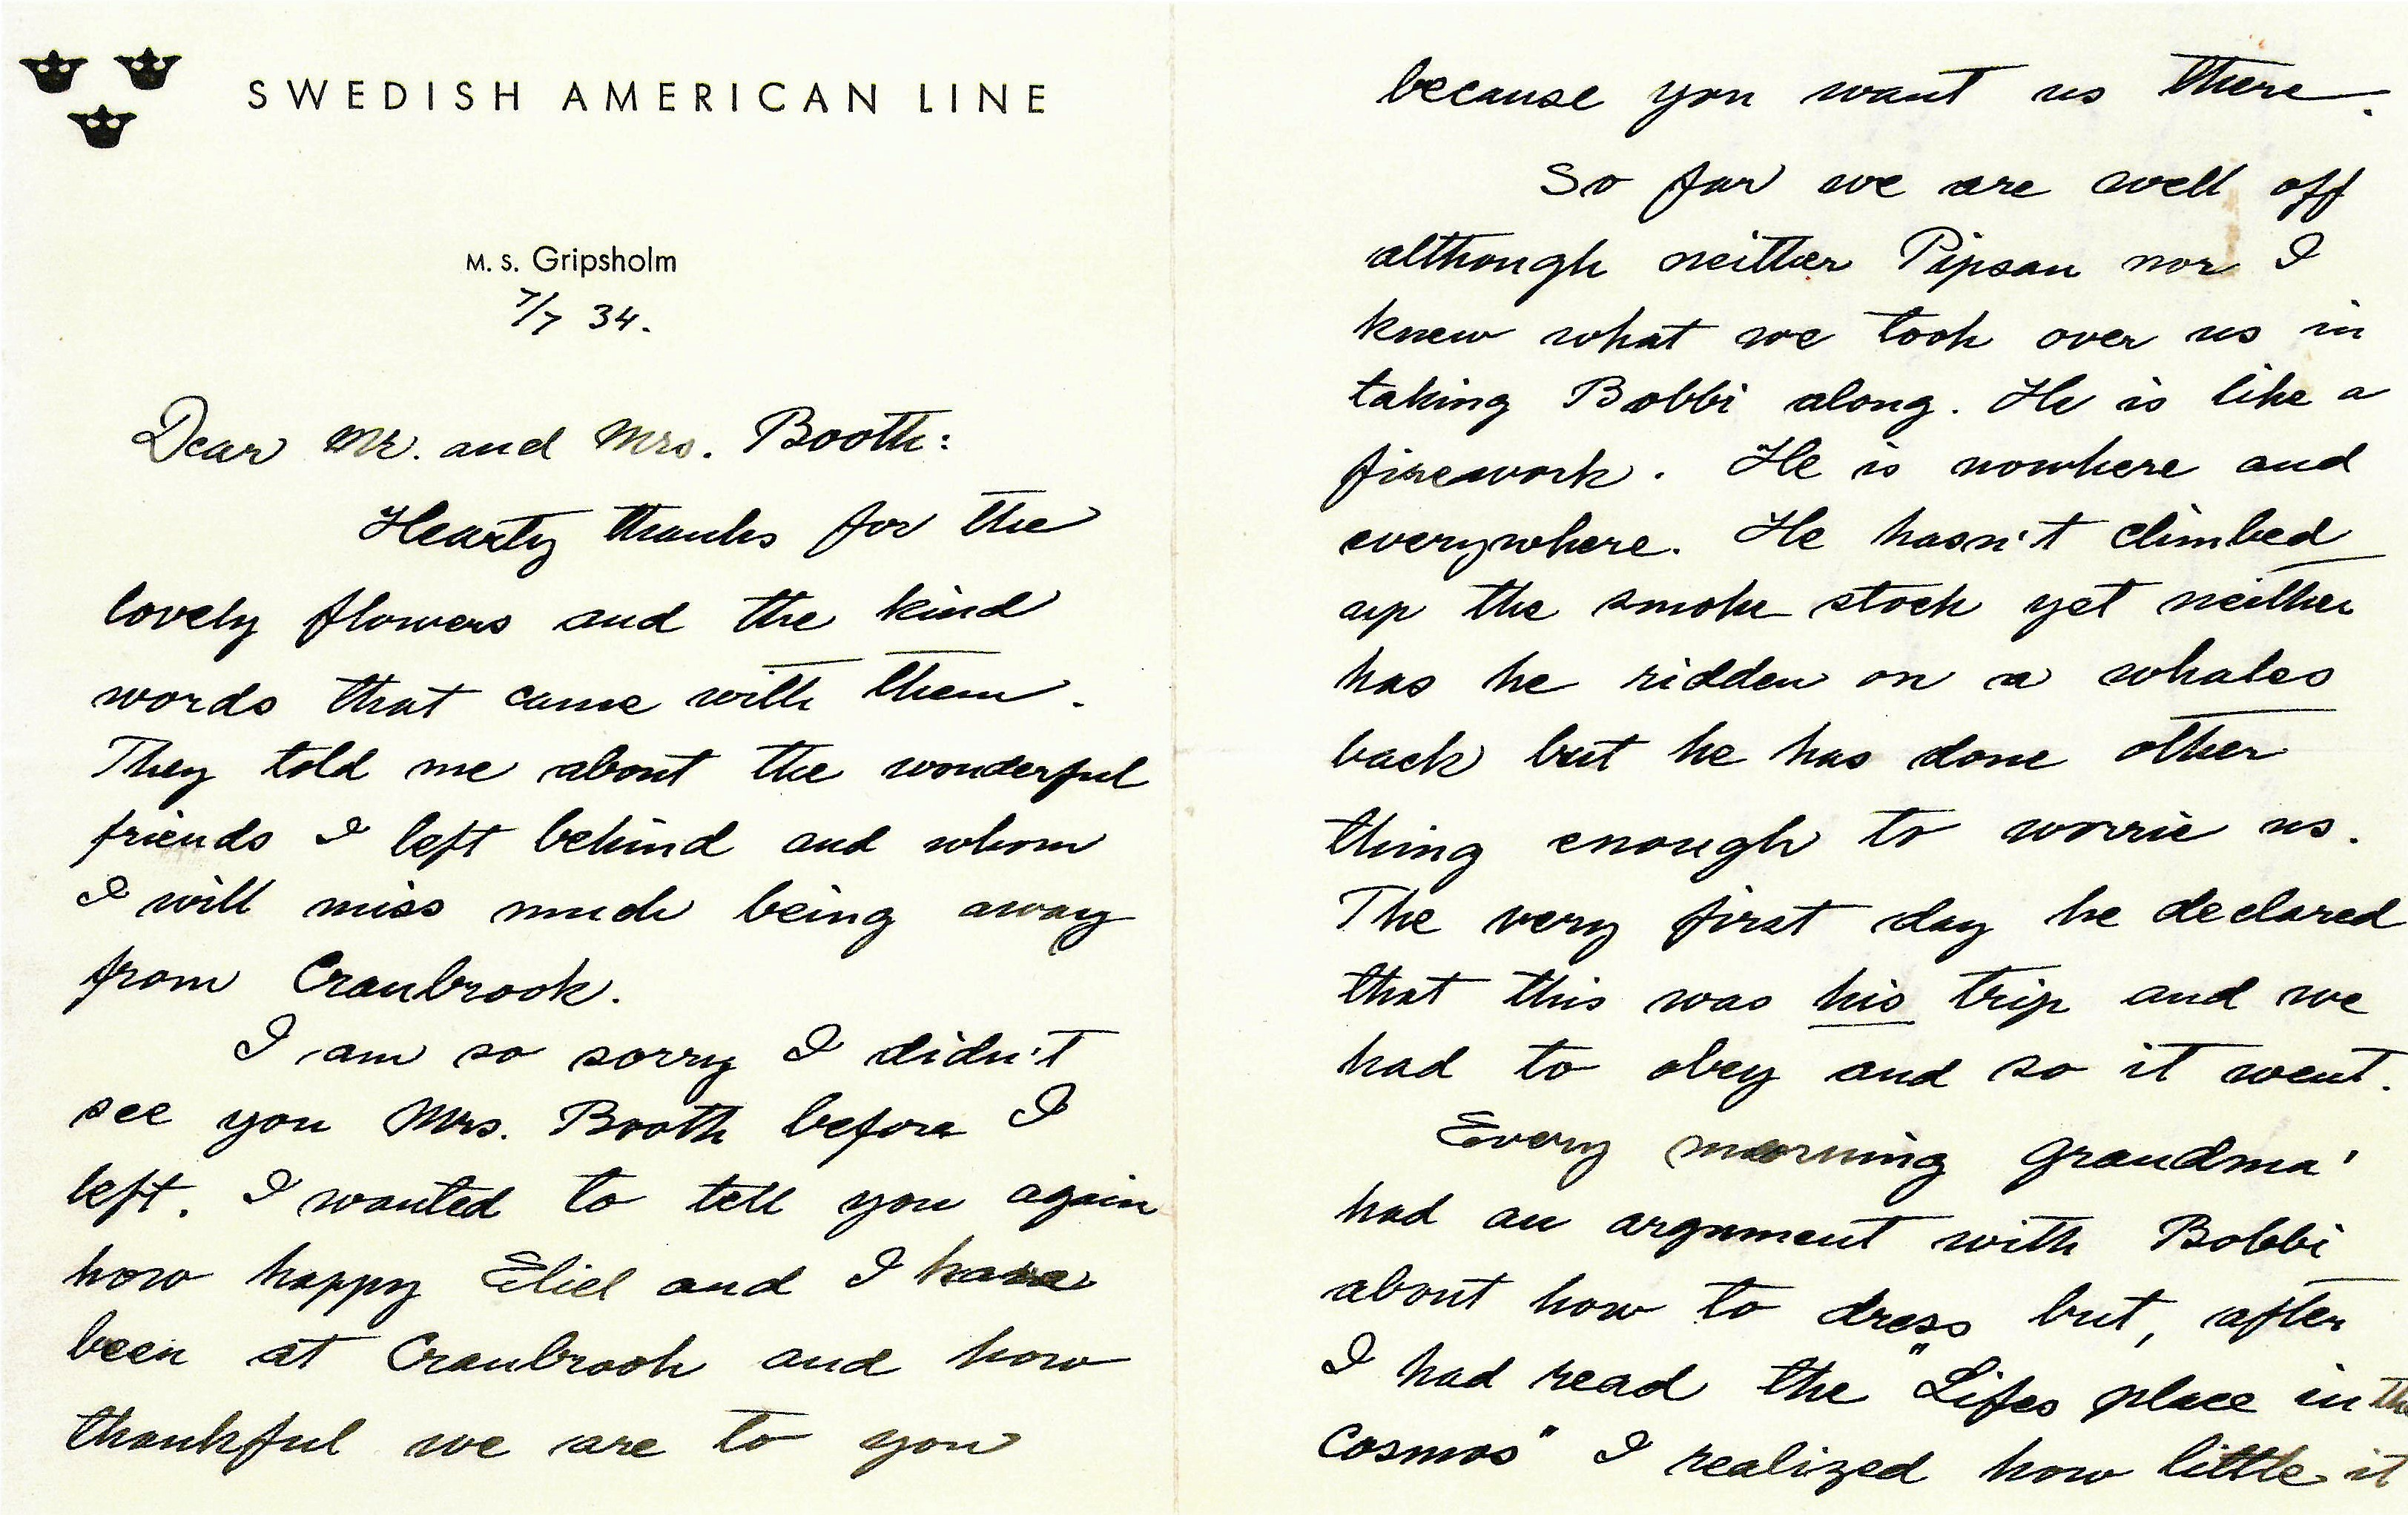 Letter from Loja Saarinen to George Booth_GGB Papers 19-4